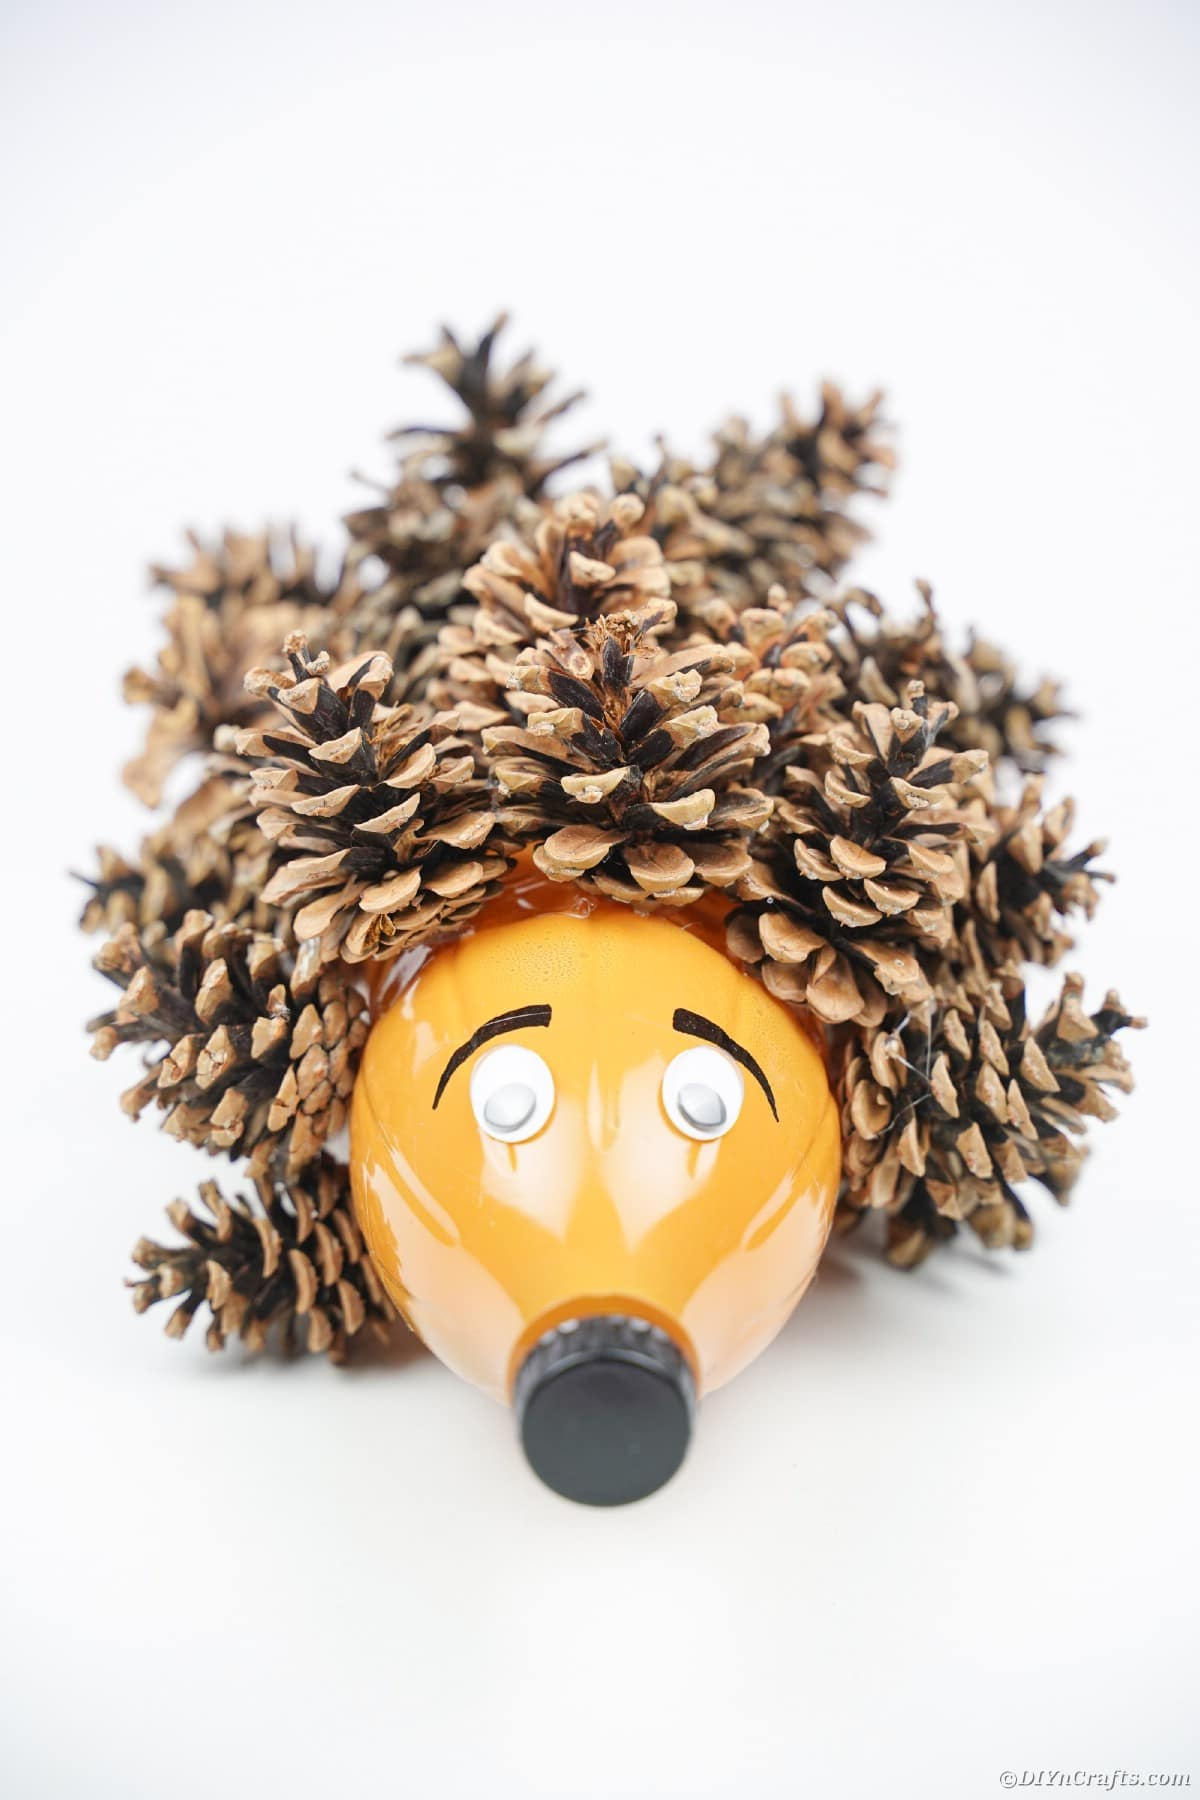 Pinecone hedgehog on white surface